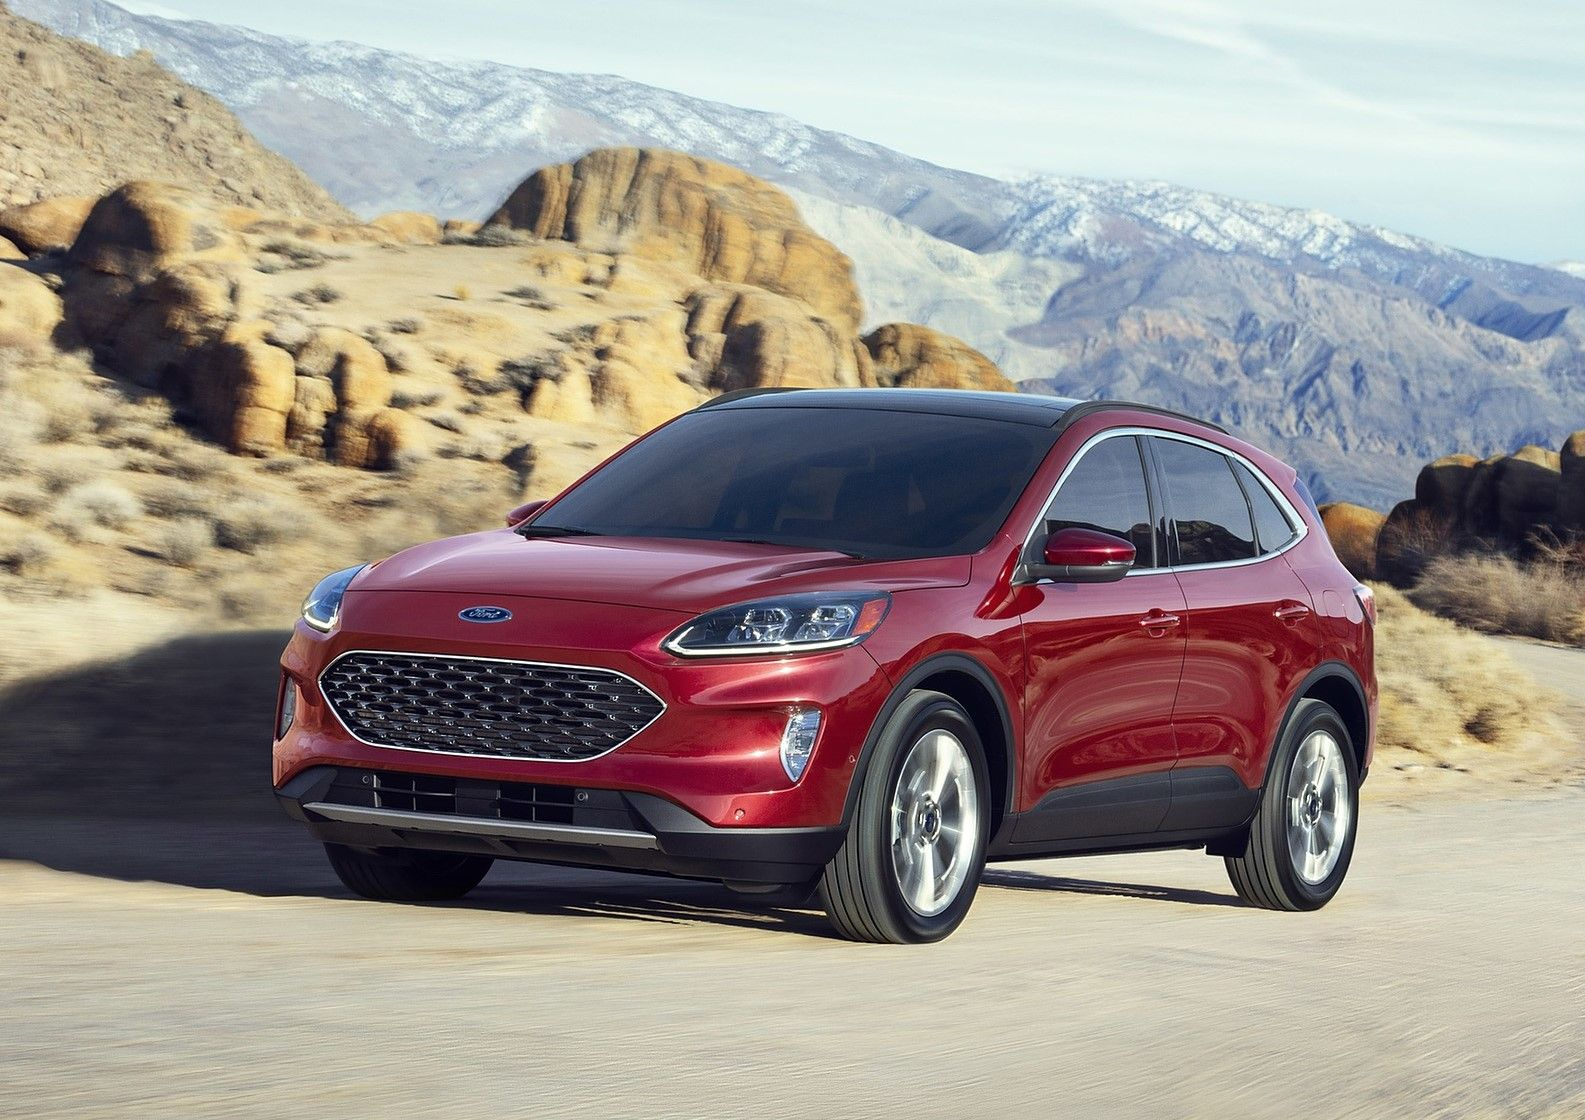 2021 Ford Escape plug-in-hybrid SUV front 3 quarter view